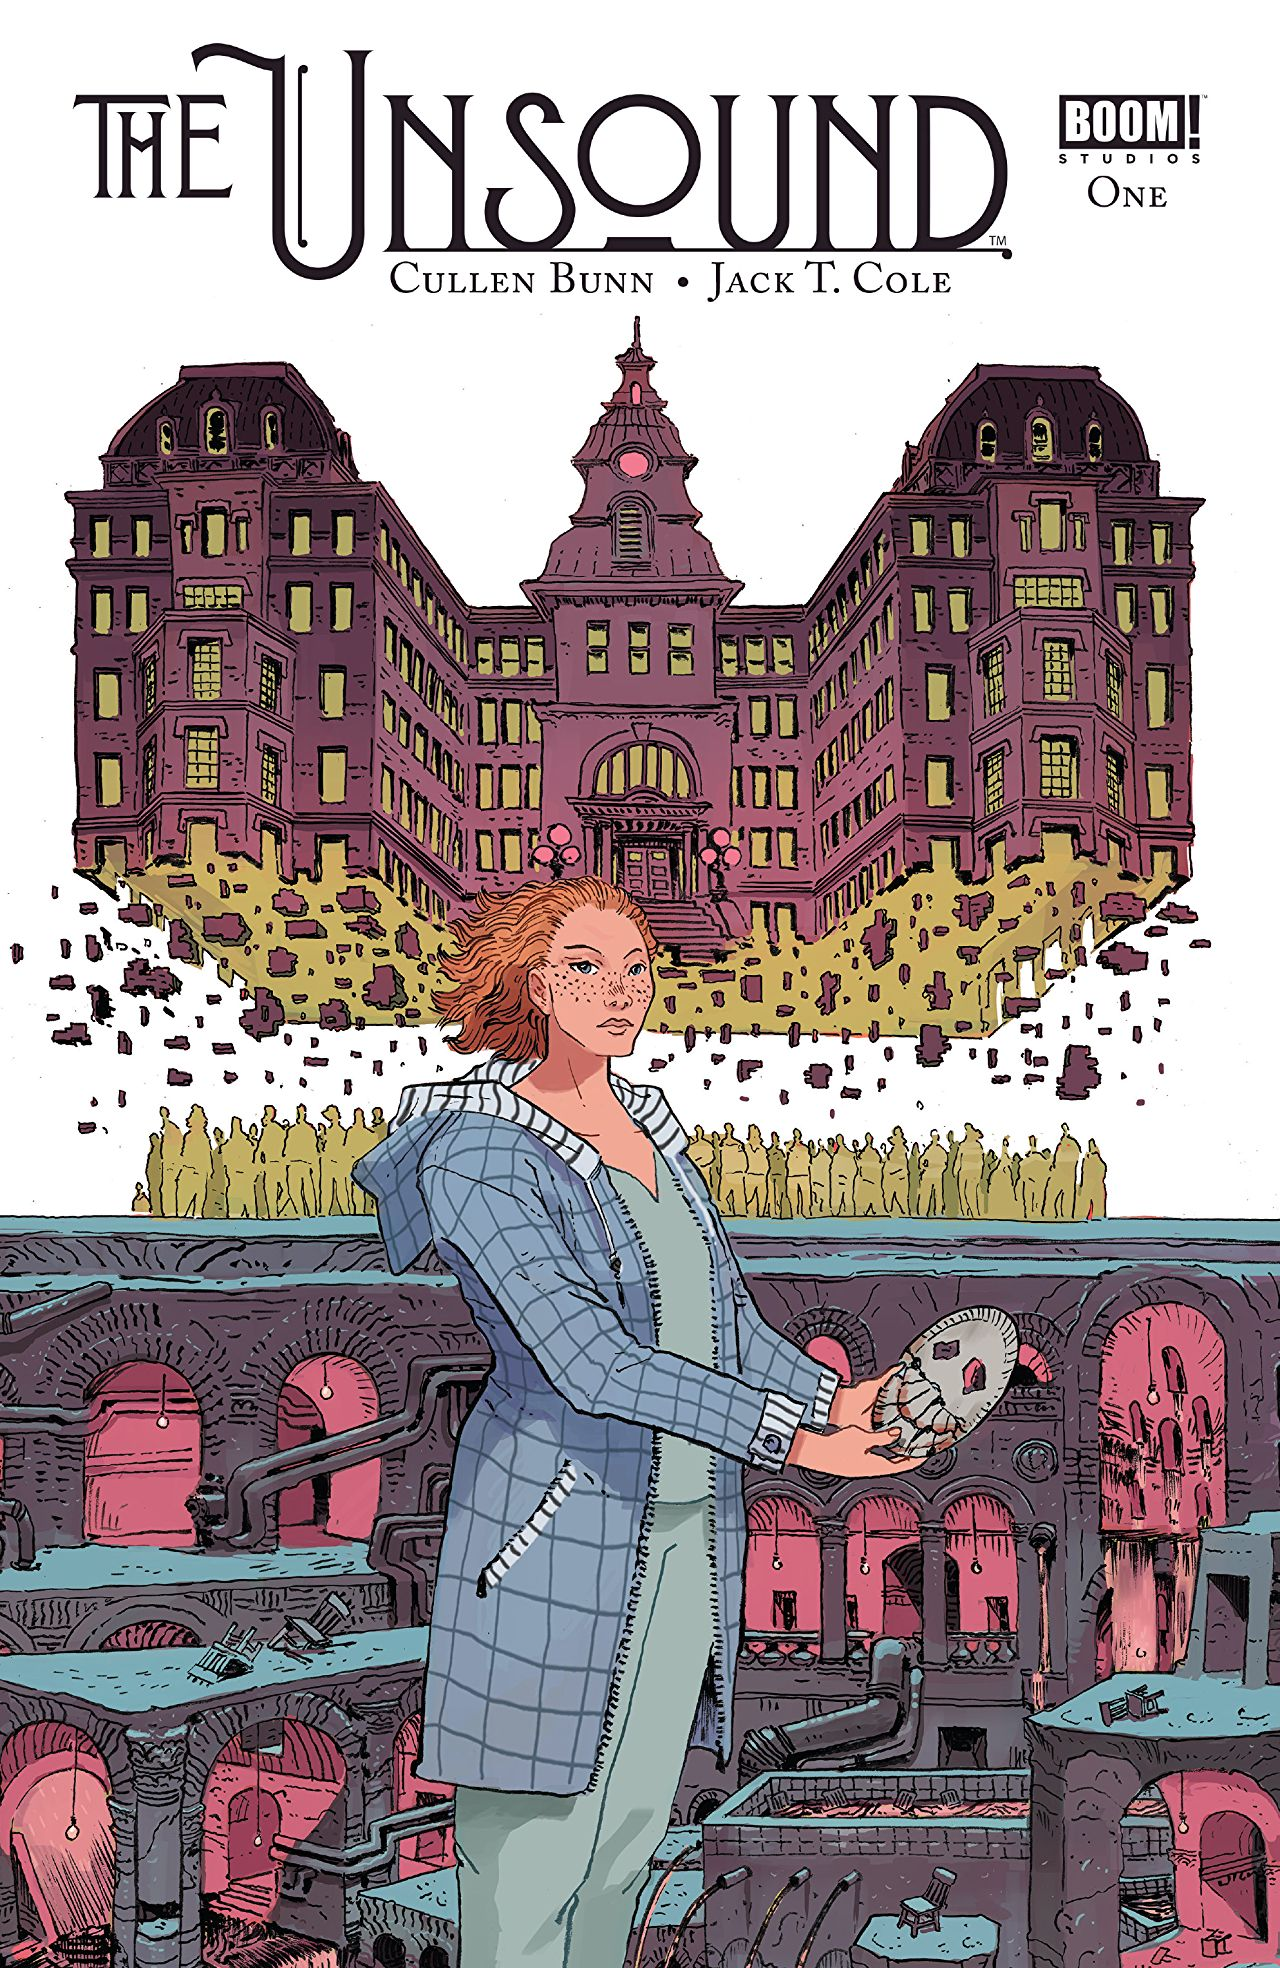 The Unsound #1 Review